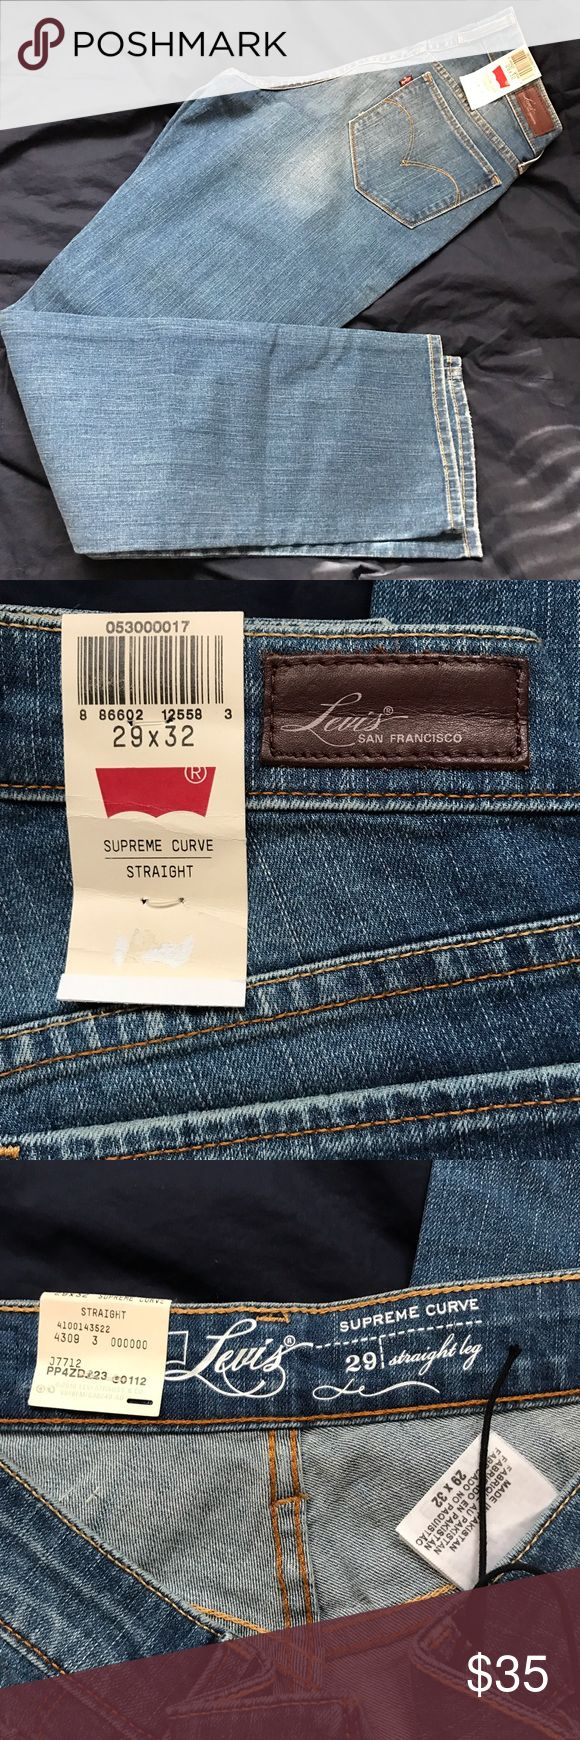 """Levi's women 29x32. NWT. Levi's women jeans new with tags. Straight leg. Supreme curve. 29x32. 29"""" waist. 32"""" inseam. Ask any questions. Retails $78+tax. Bundle and save. Levi's Jeans Straight Leg"""